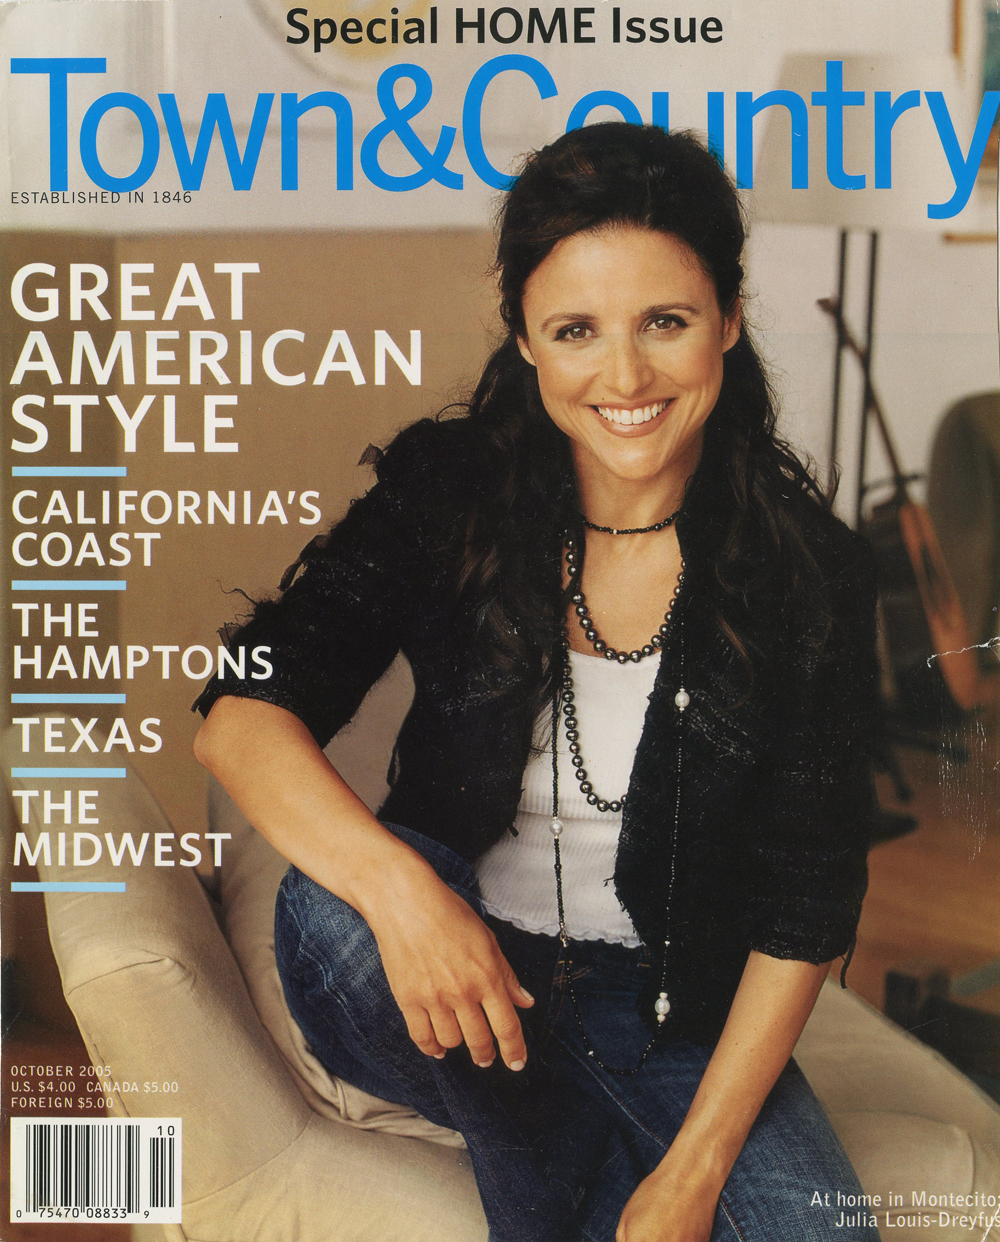 ll-press-web-town-country-oct-2005-pilow-press-cover-1.jpg